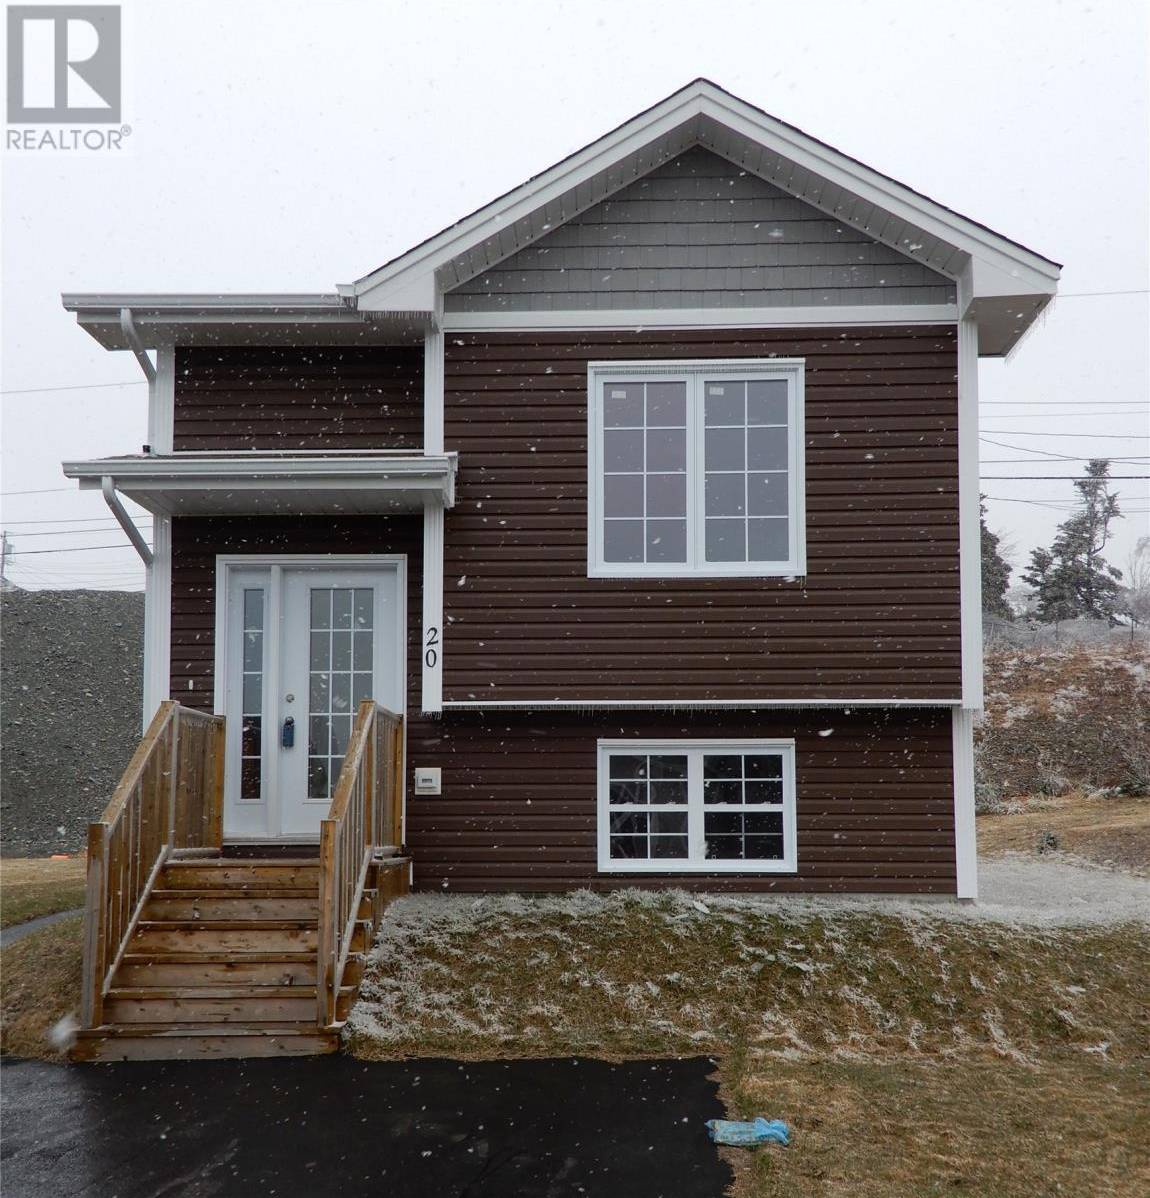 House for sale at 20 Rotary Dr St. John's Newfoundland - MLS: 1199834